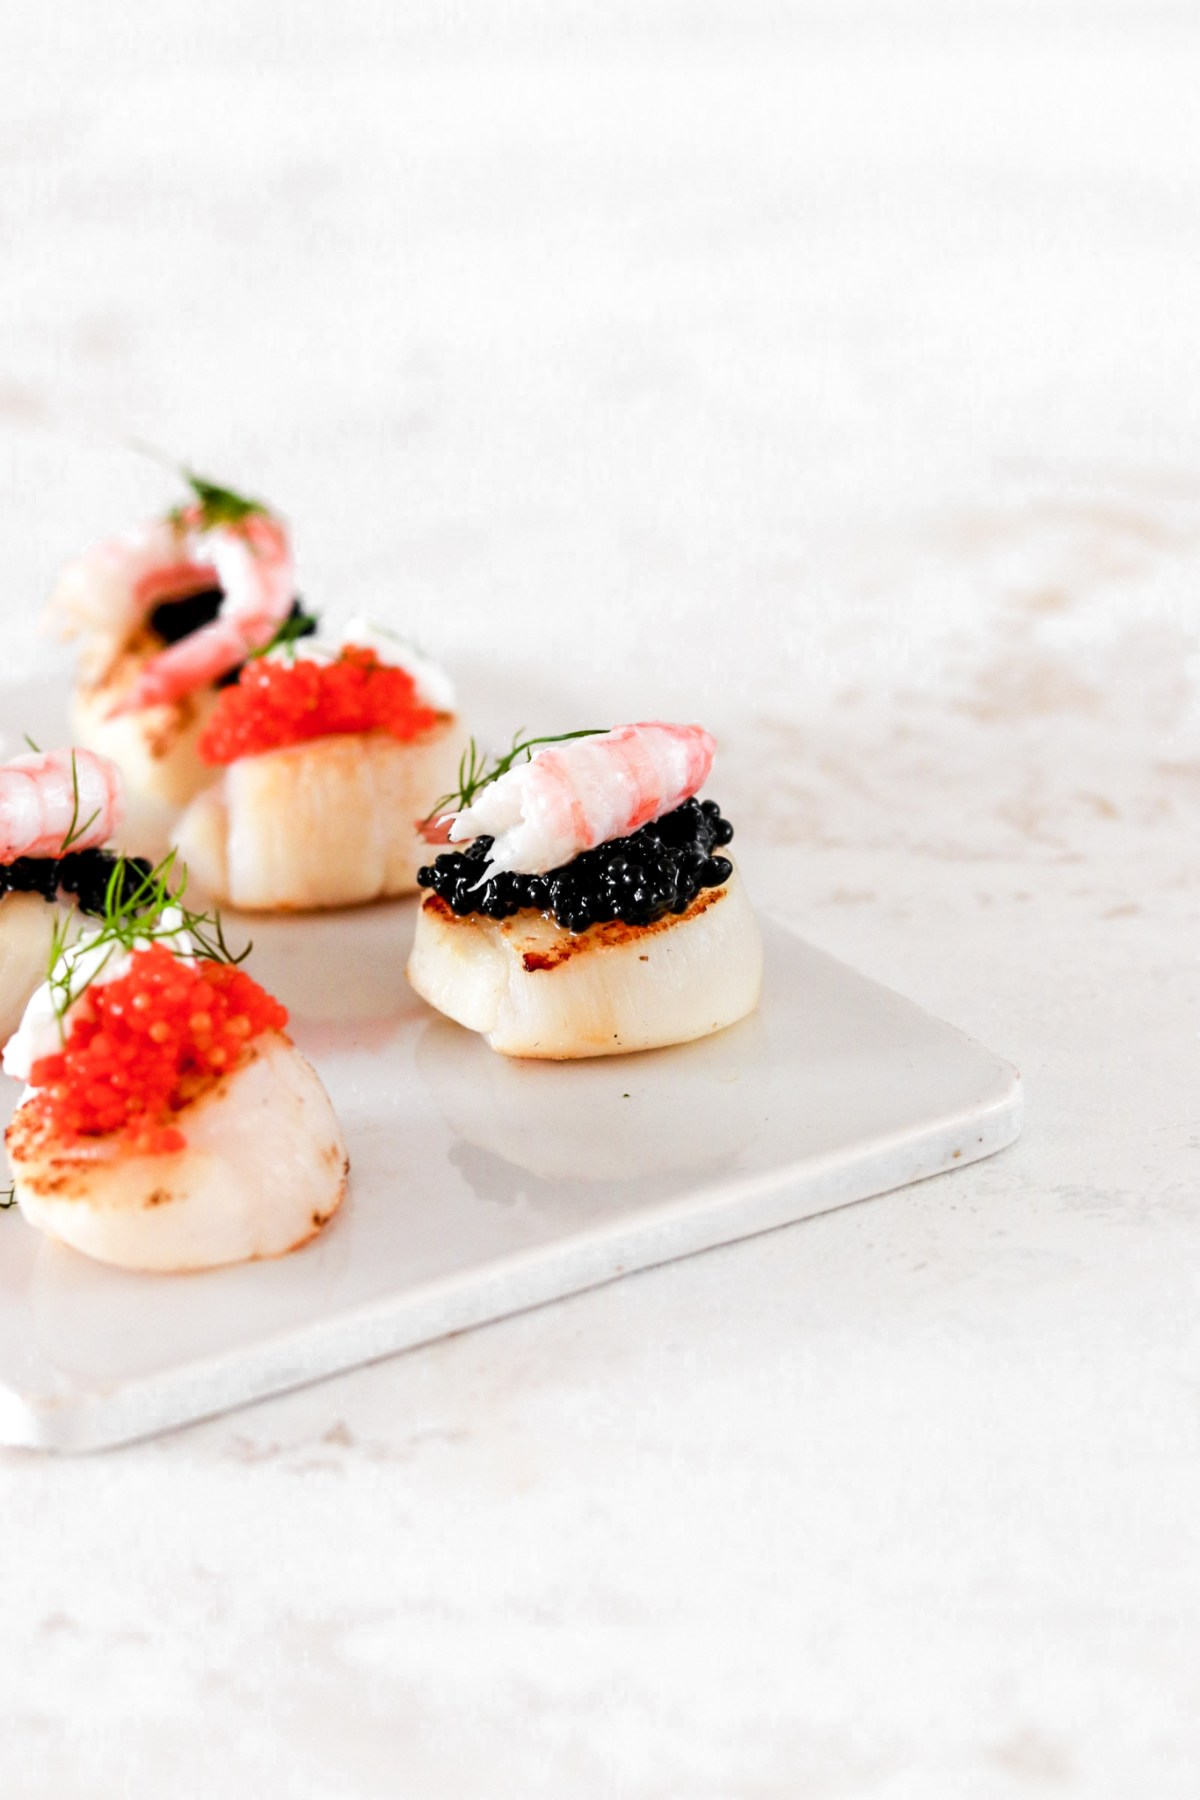 Scallop Bites with Caviar & Shrimps (Gluten, Grain Free & Low Carb) From Close Up